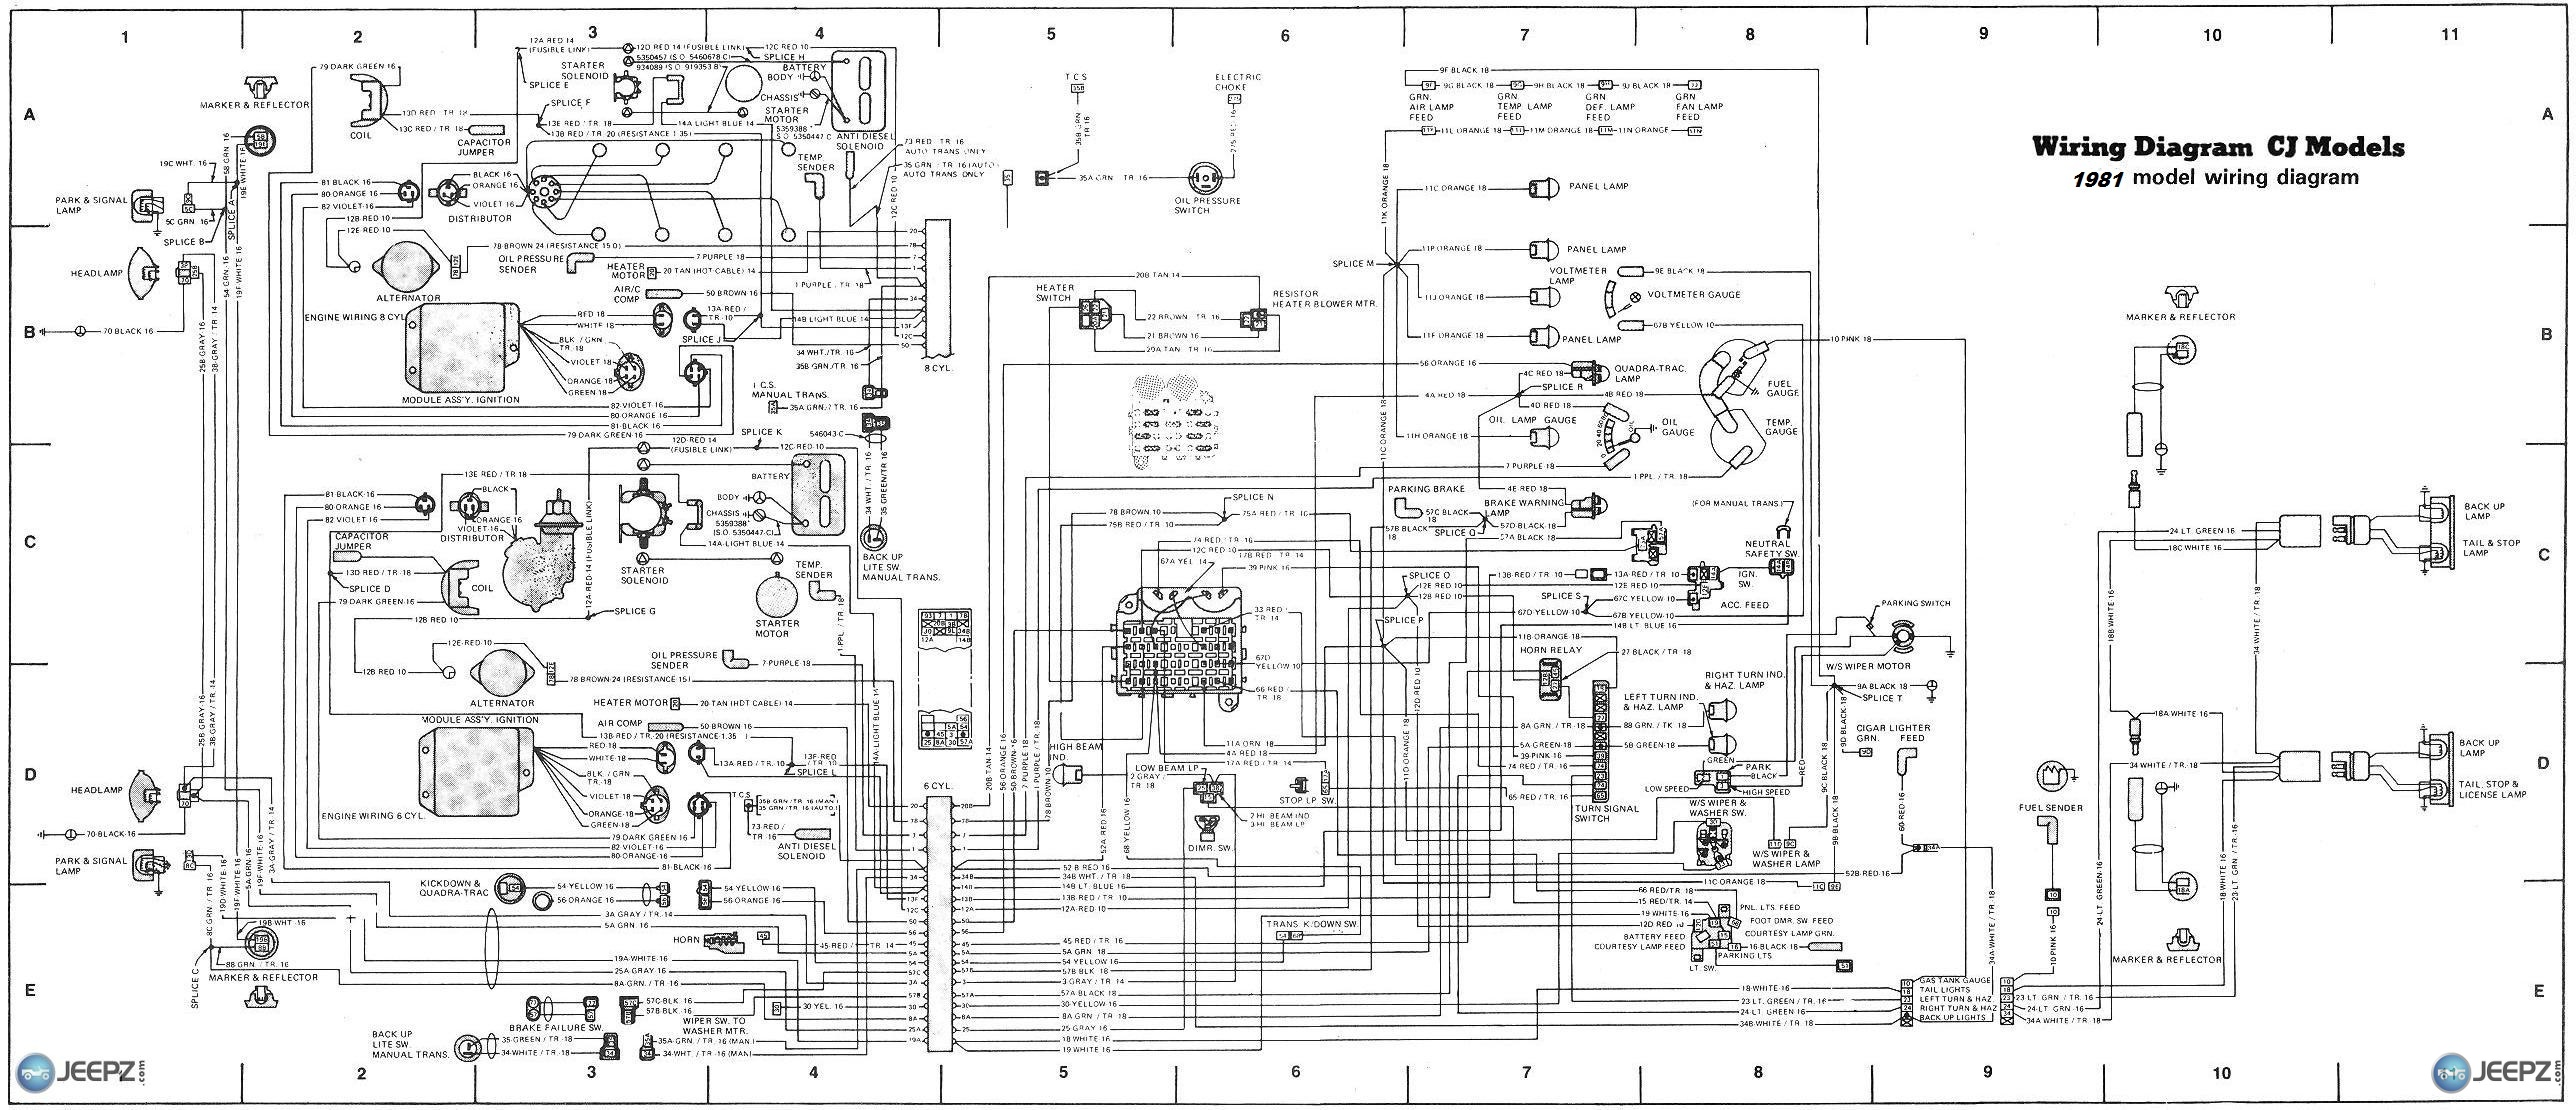 1975 jeep ignition wiring diagram schematic - wiring diagram system  few-dignal-a - few-dignal-a.ediliadesign.it  ediliadesign.it